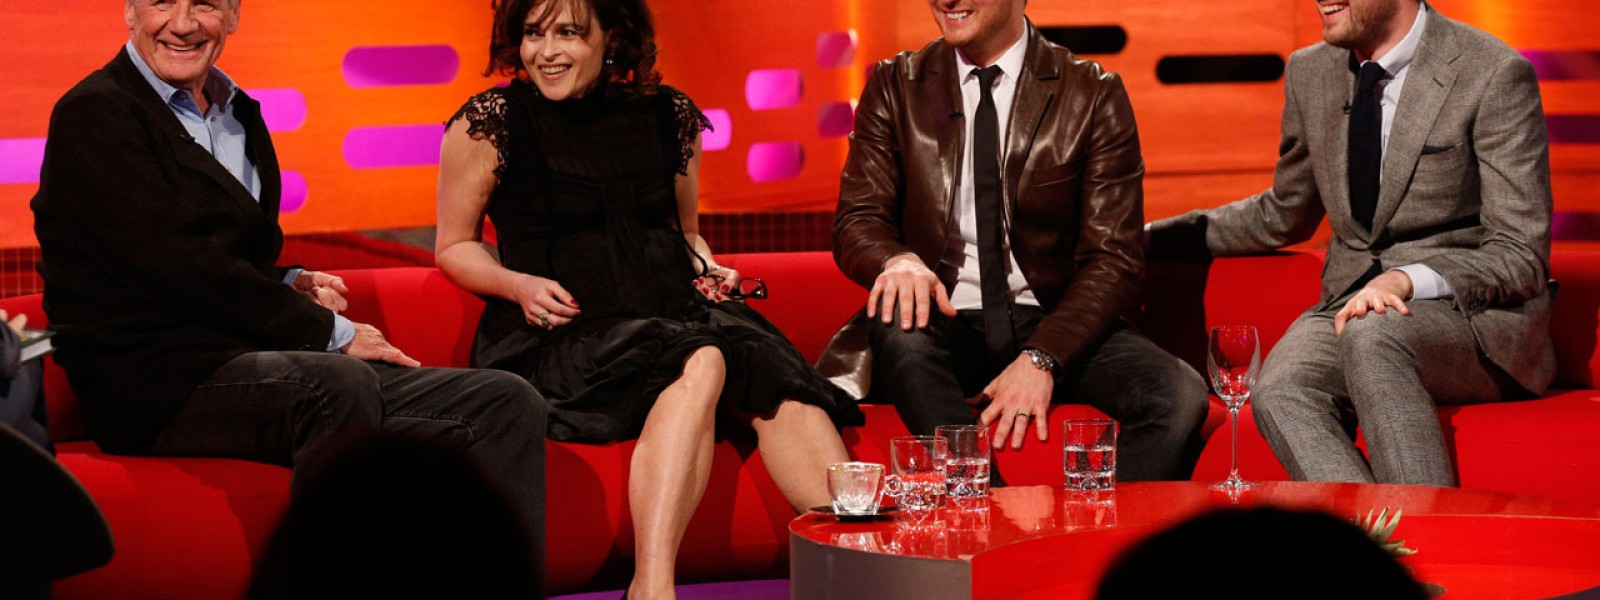 grahamnorton_photo_s12_e5_02_web